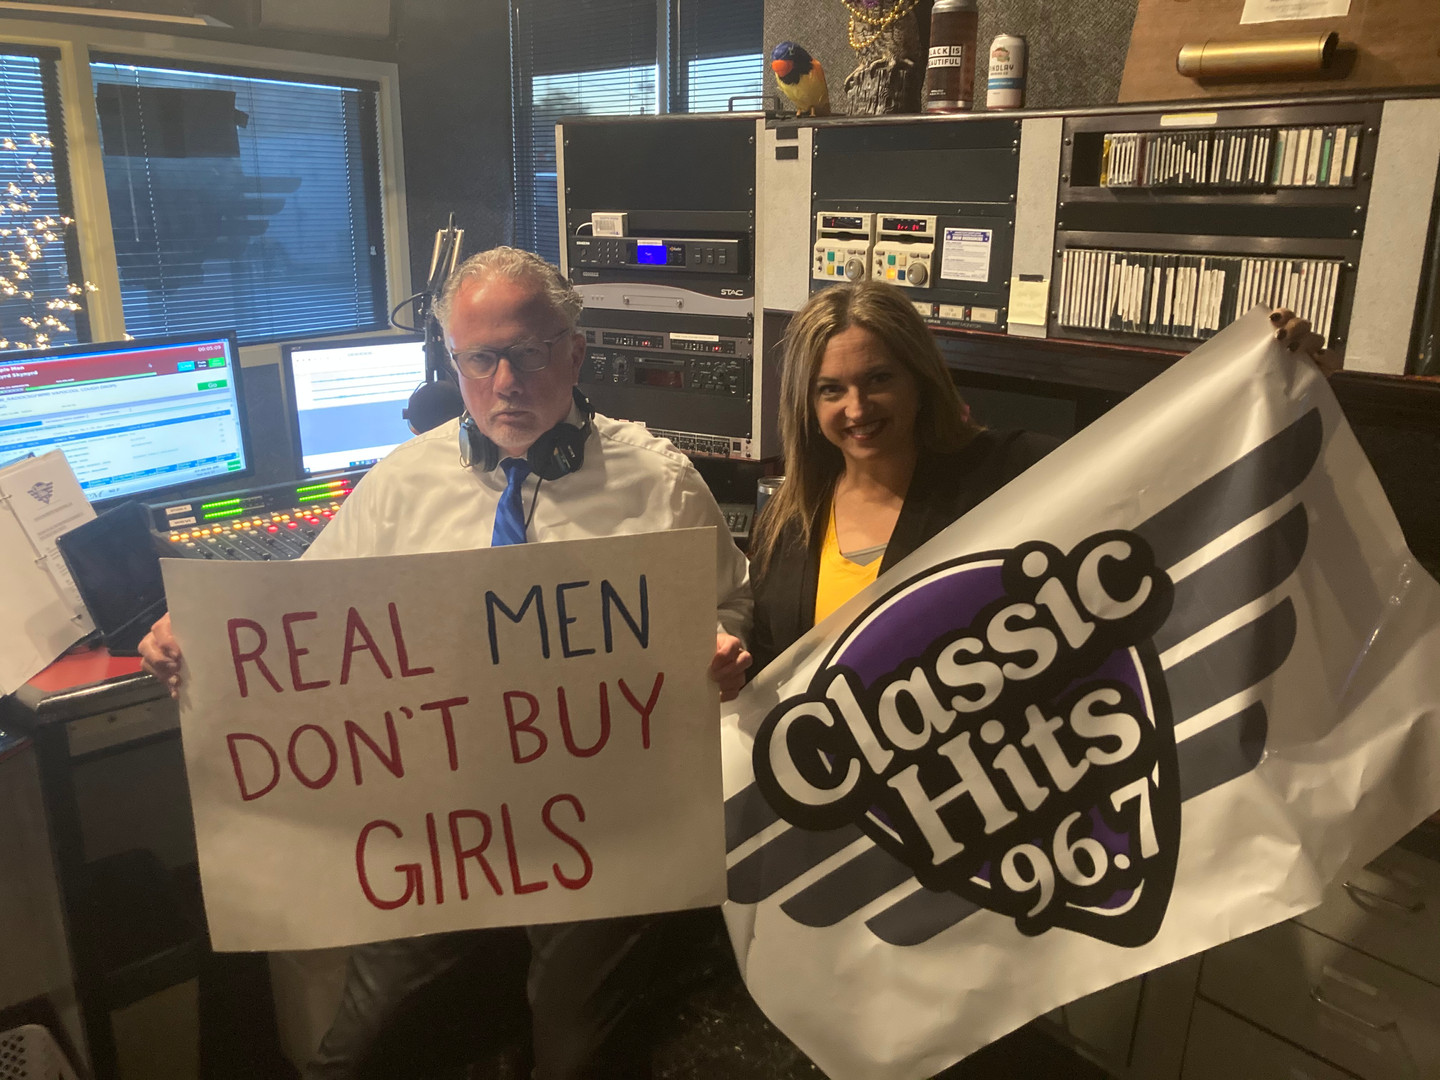 Keith Hodkinson and Dawn Egbert with Classic Hits 96.7 in Fostoria